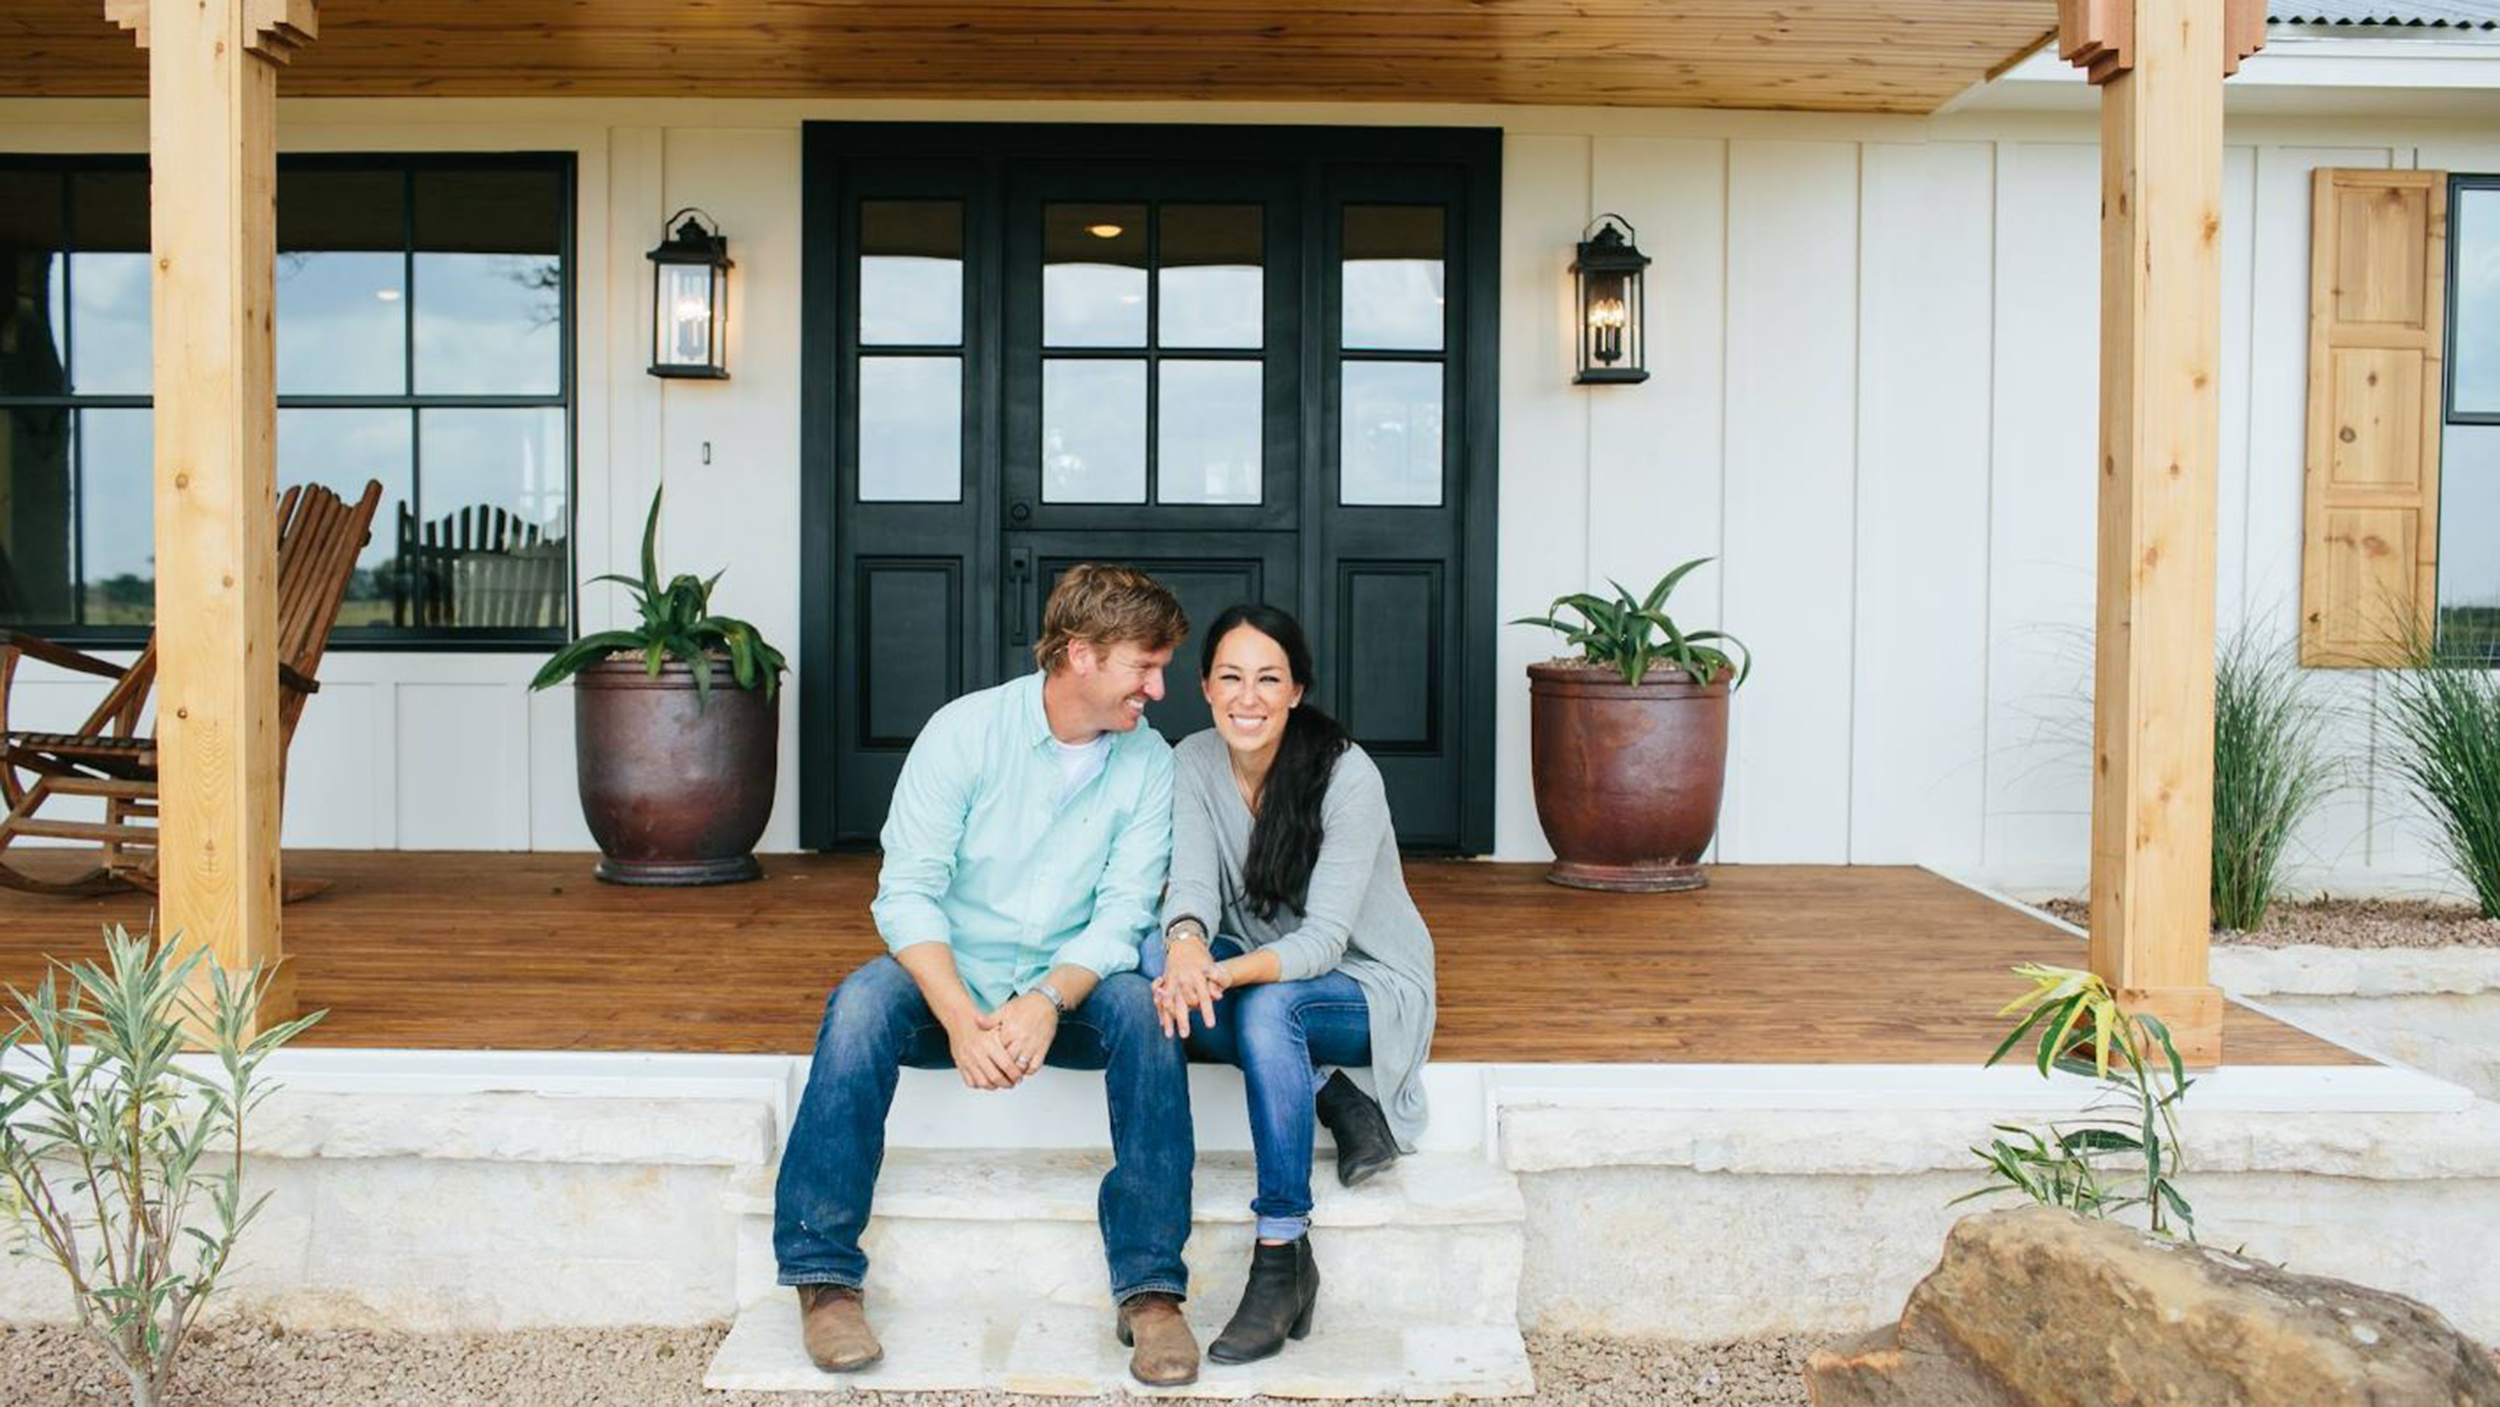 Joanna Gaines From Fixer Upper Spills Secrets About